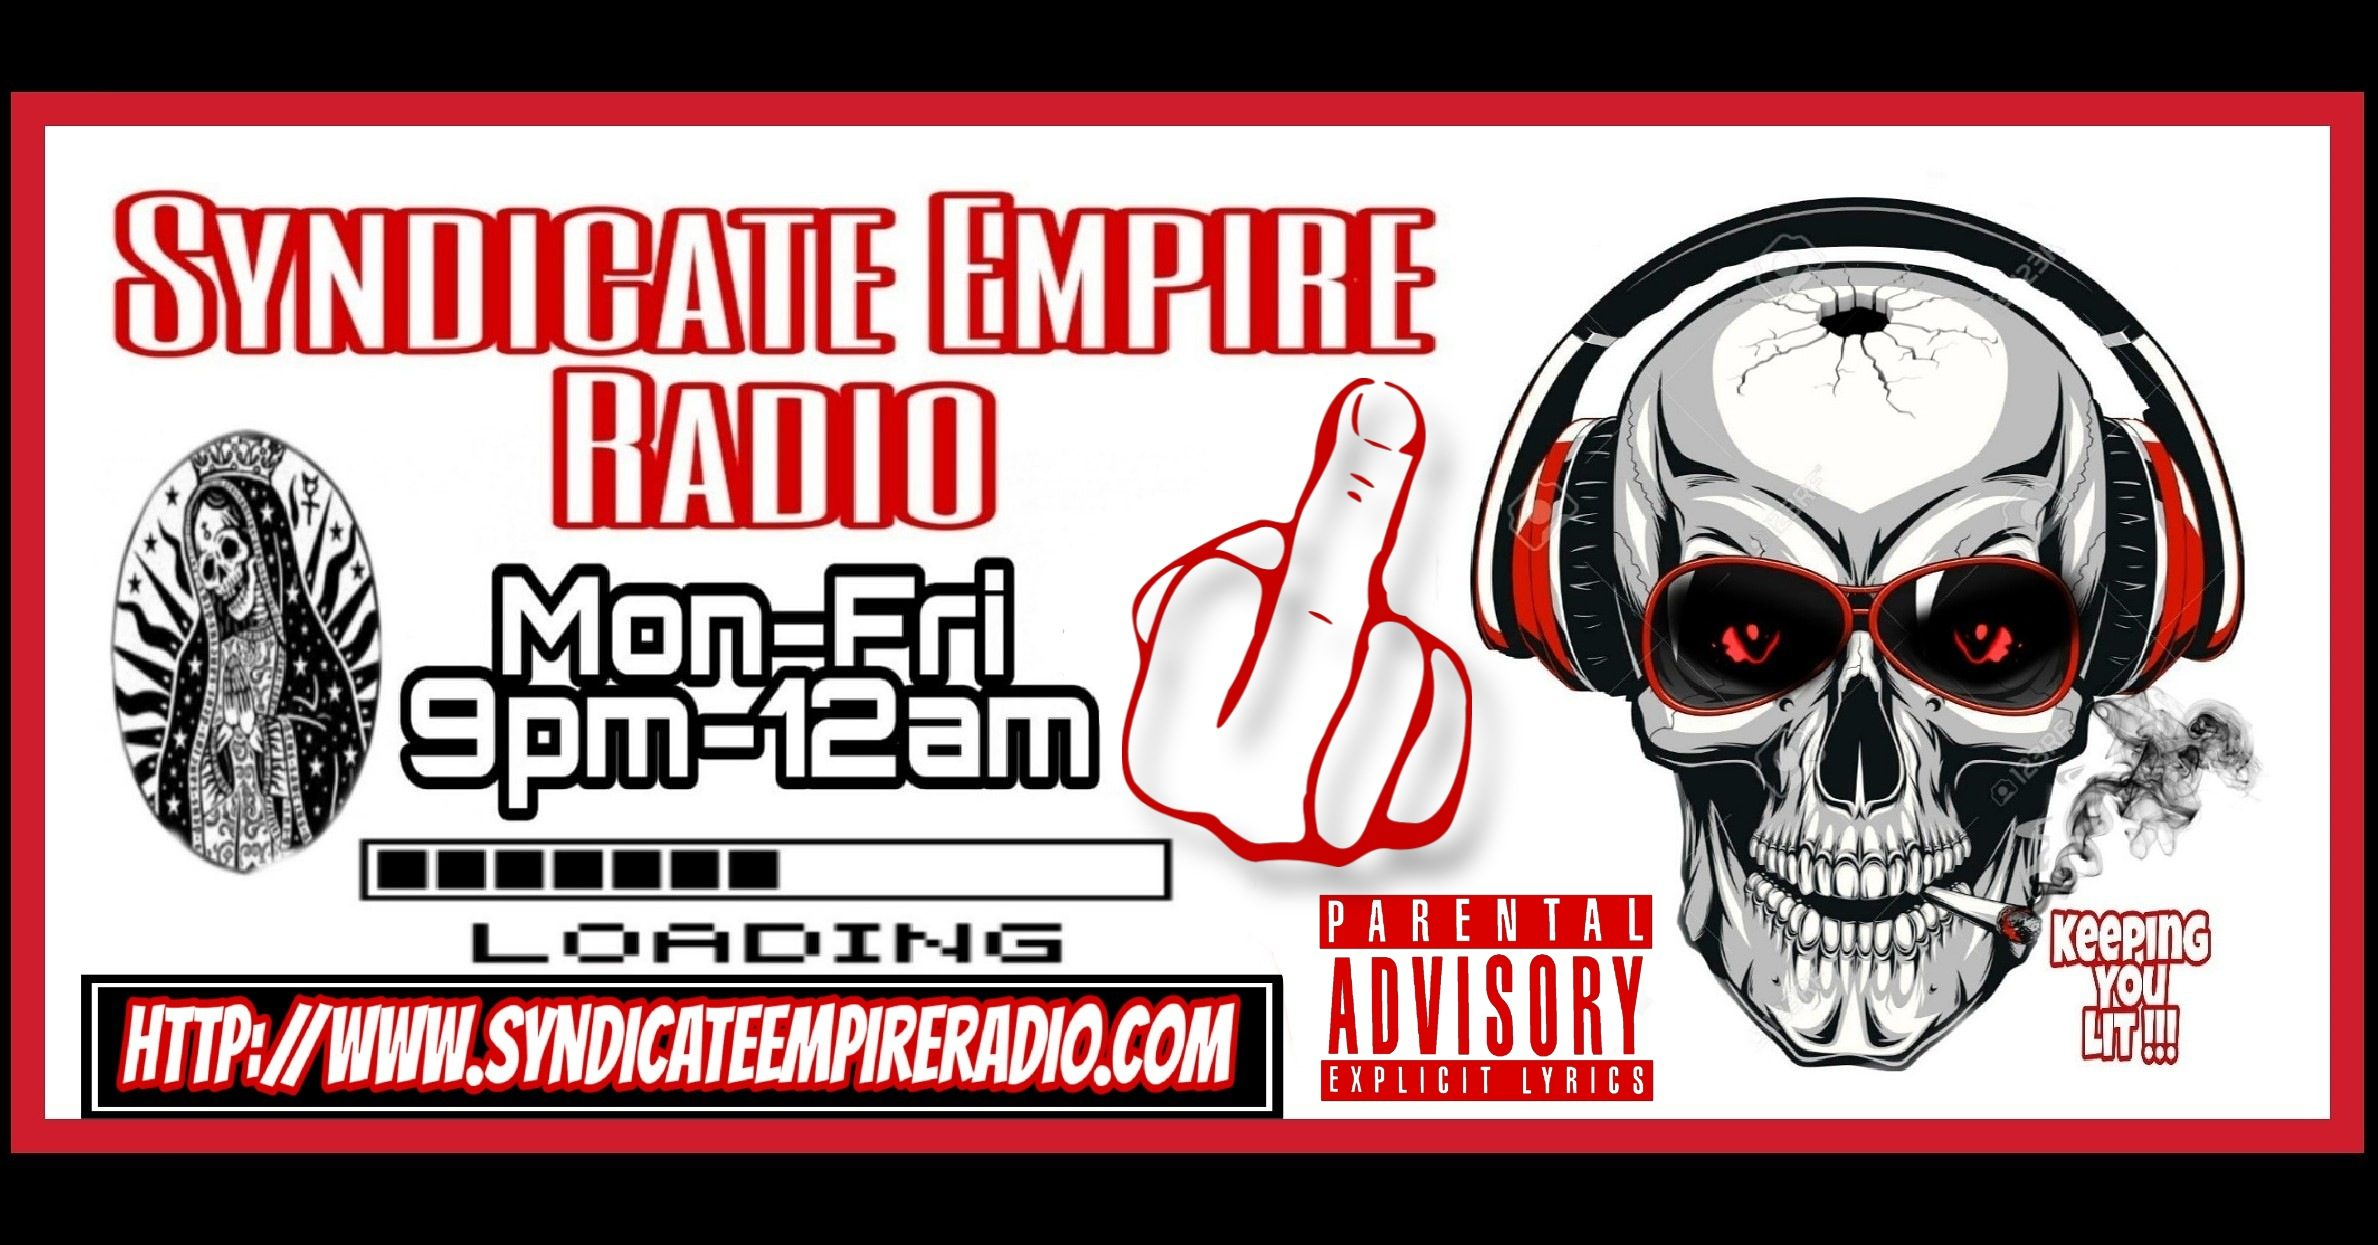 Syndicate Empire Radio